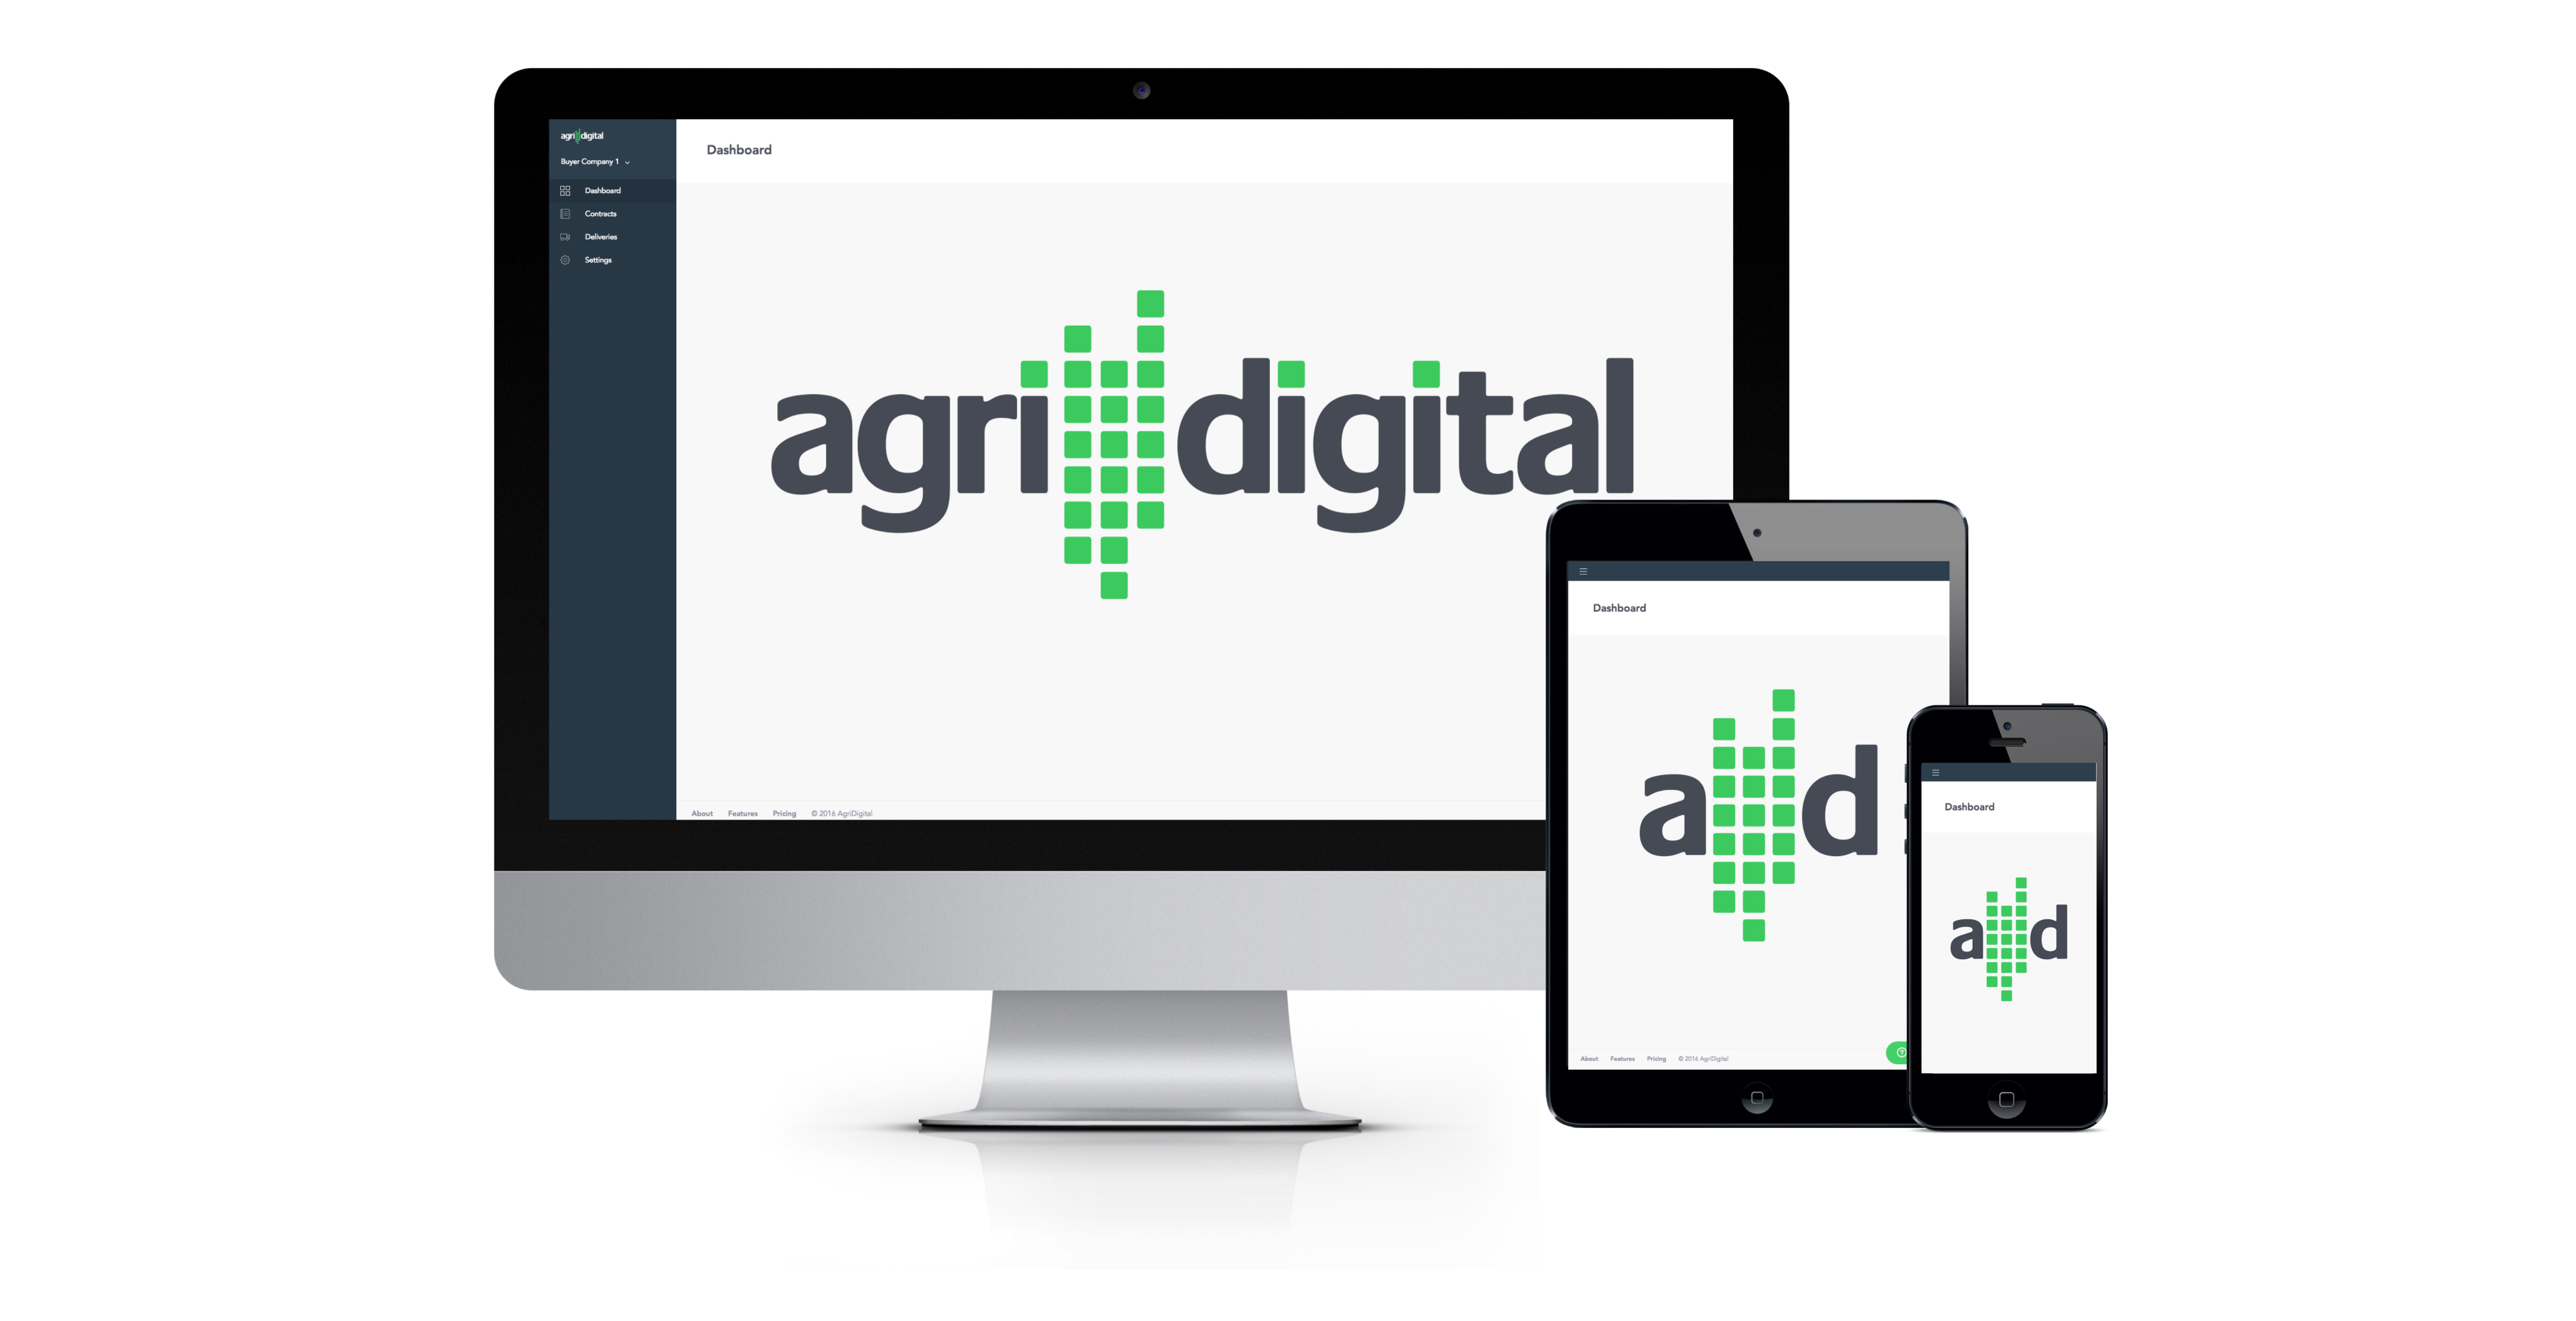 AgriDigital successfully launched by Full Profile